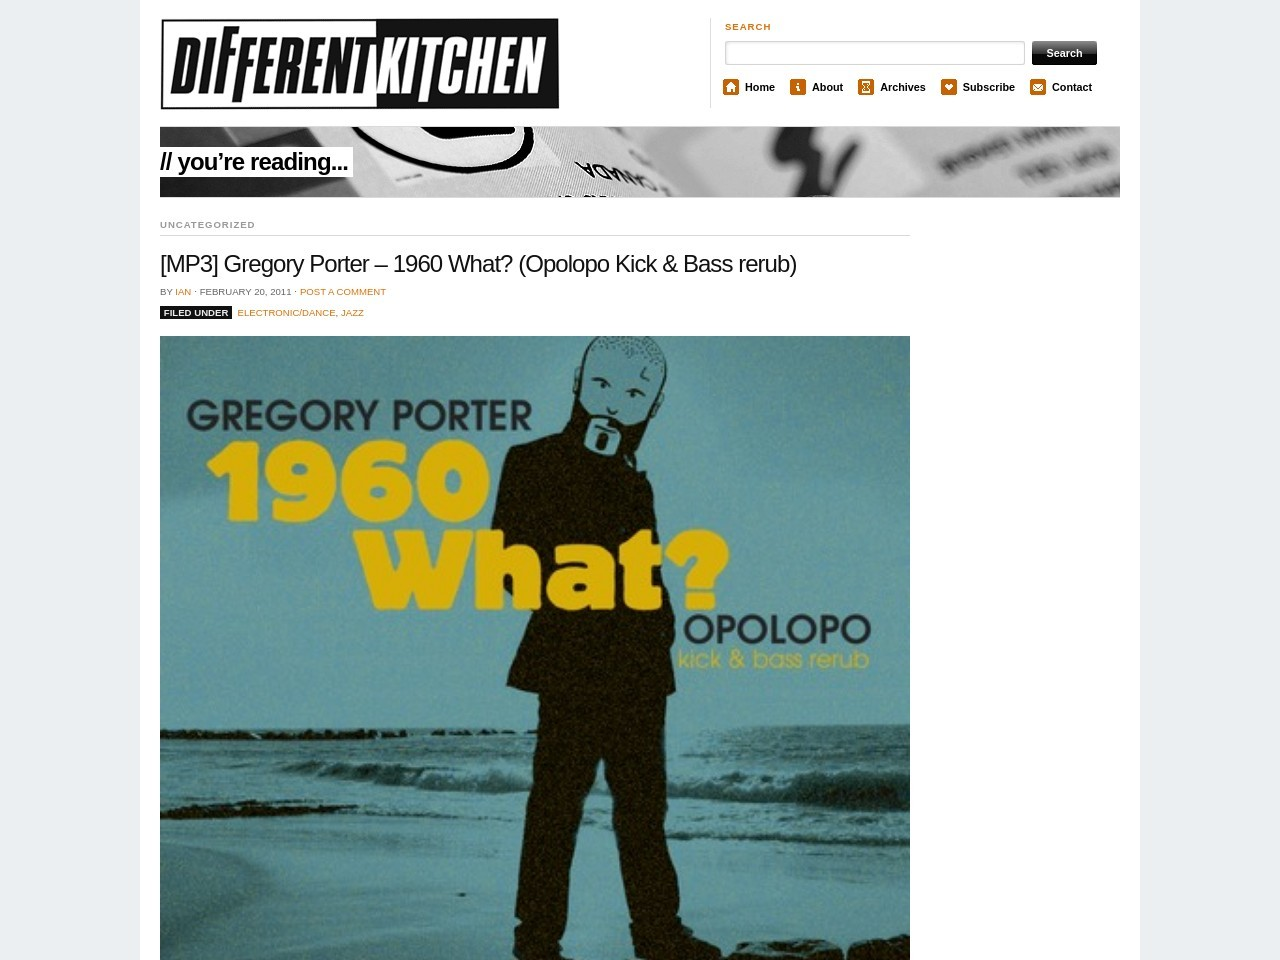 [MP3] Gregory Porter – 1960 What? (Opolopo Kick & Bass rerub)